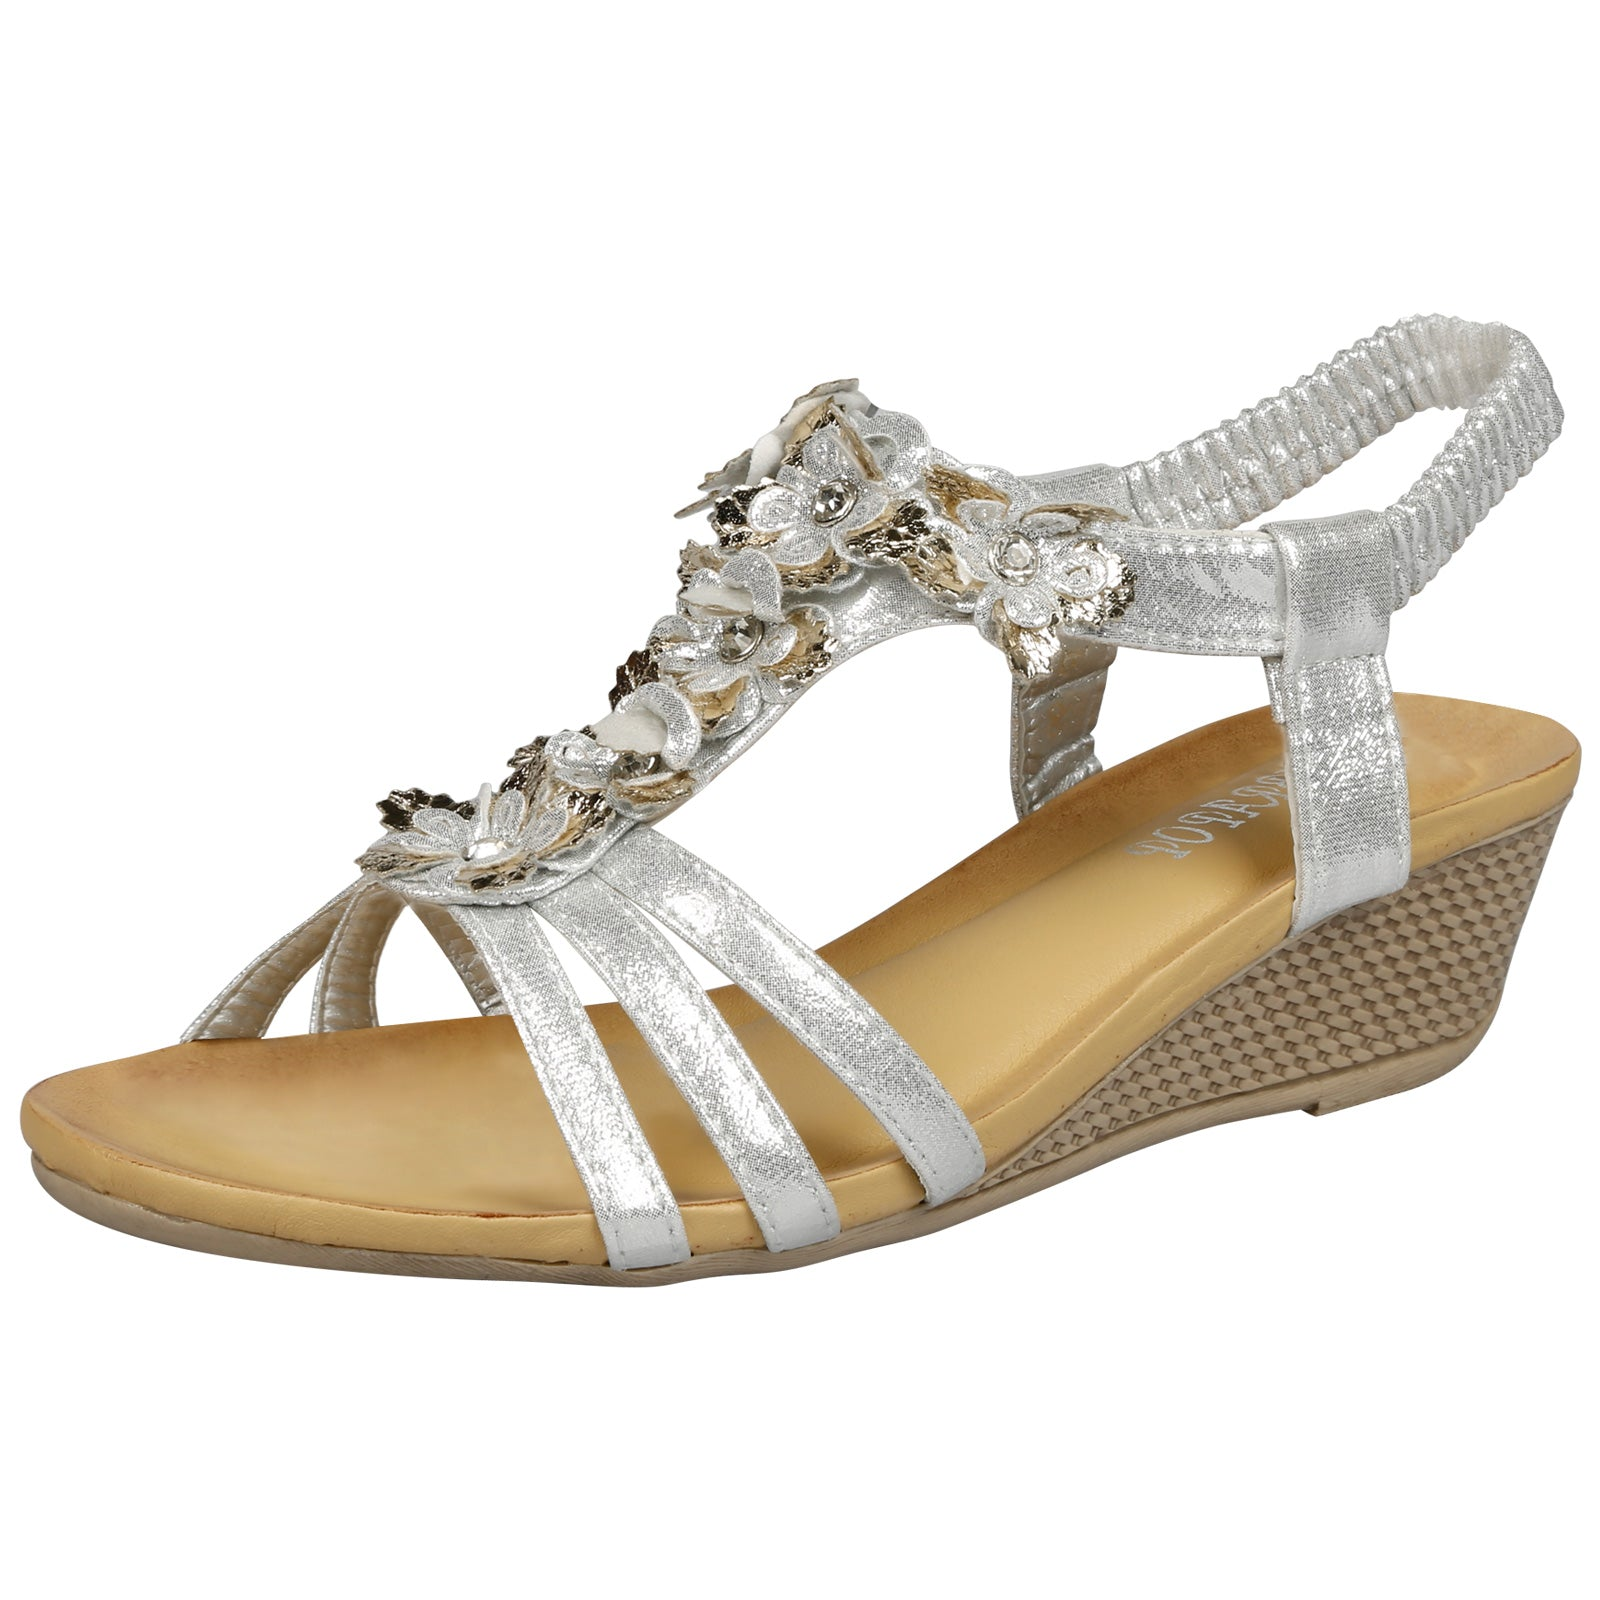 Leilani Low Wedge Floral Sandals in Silver - Feet First Fashion